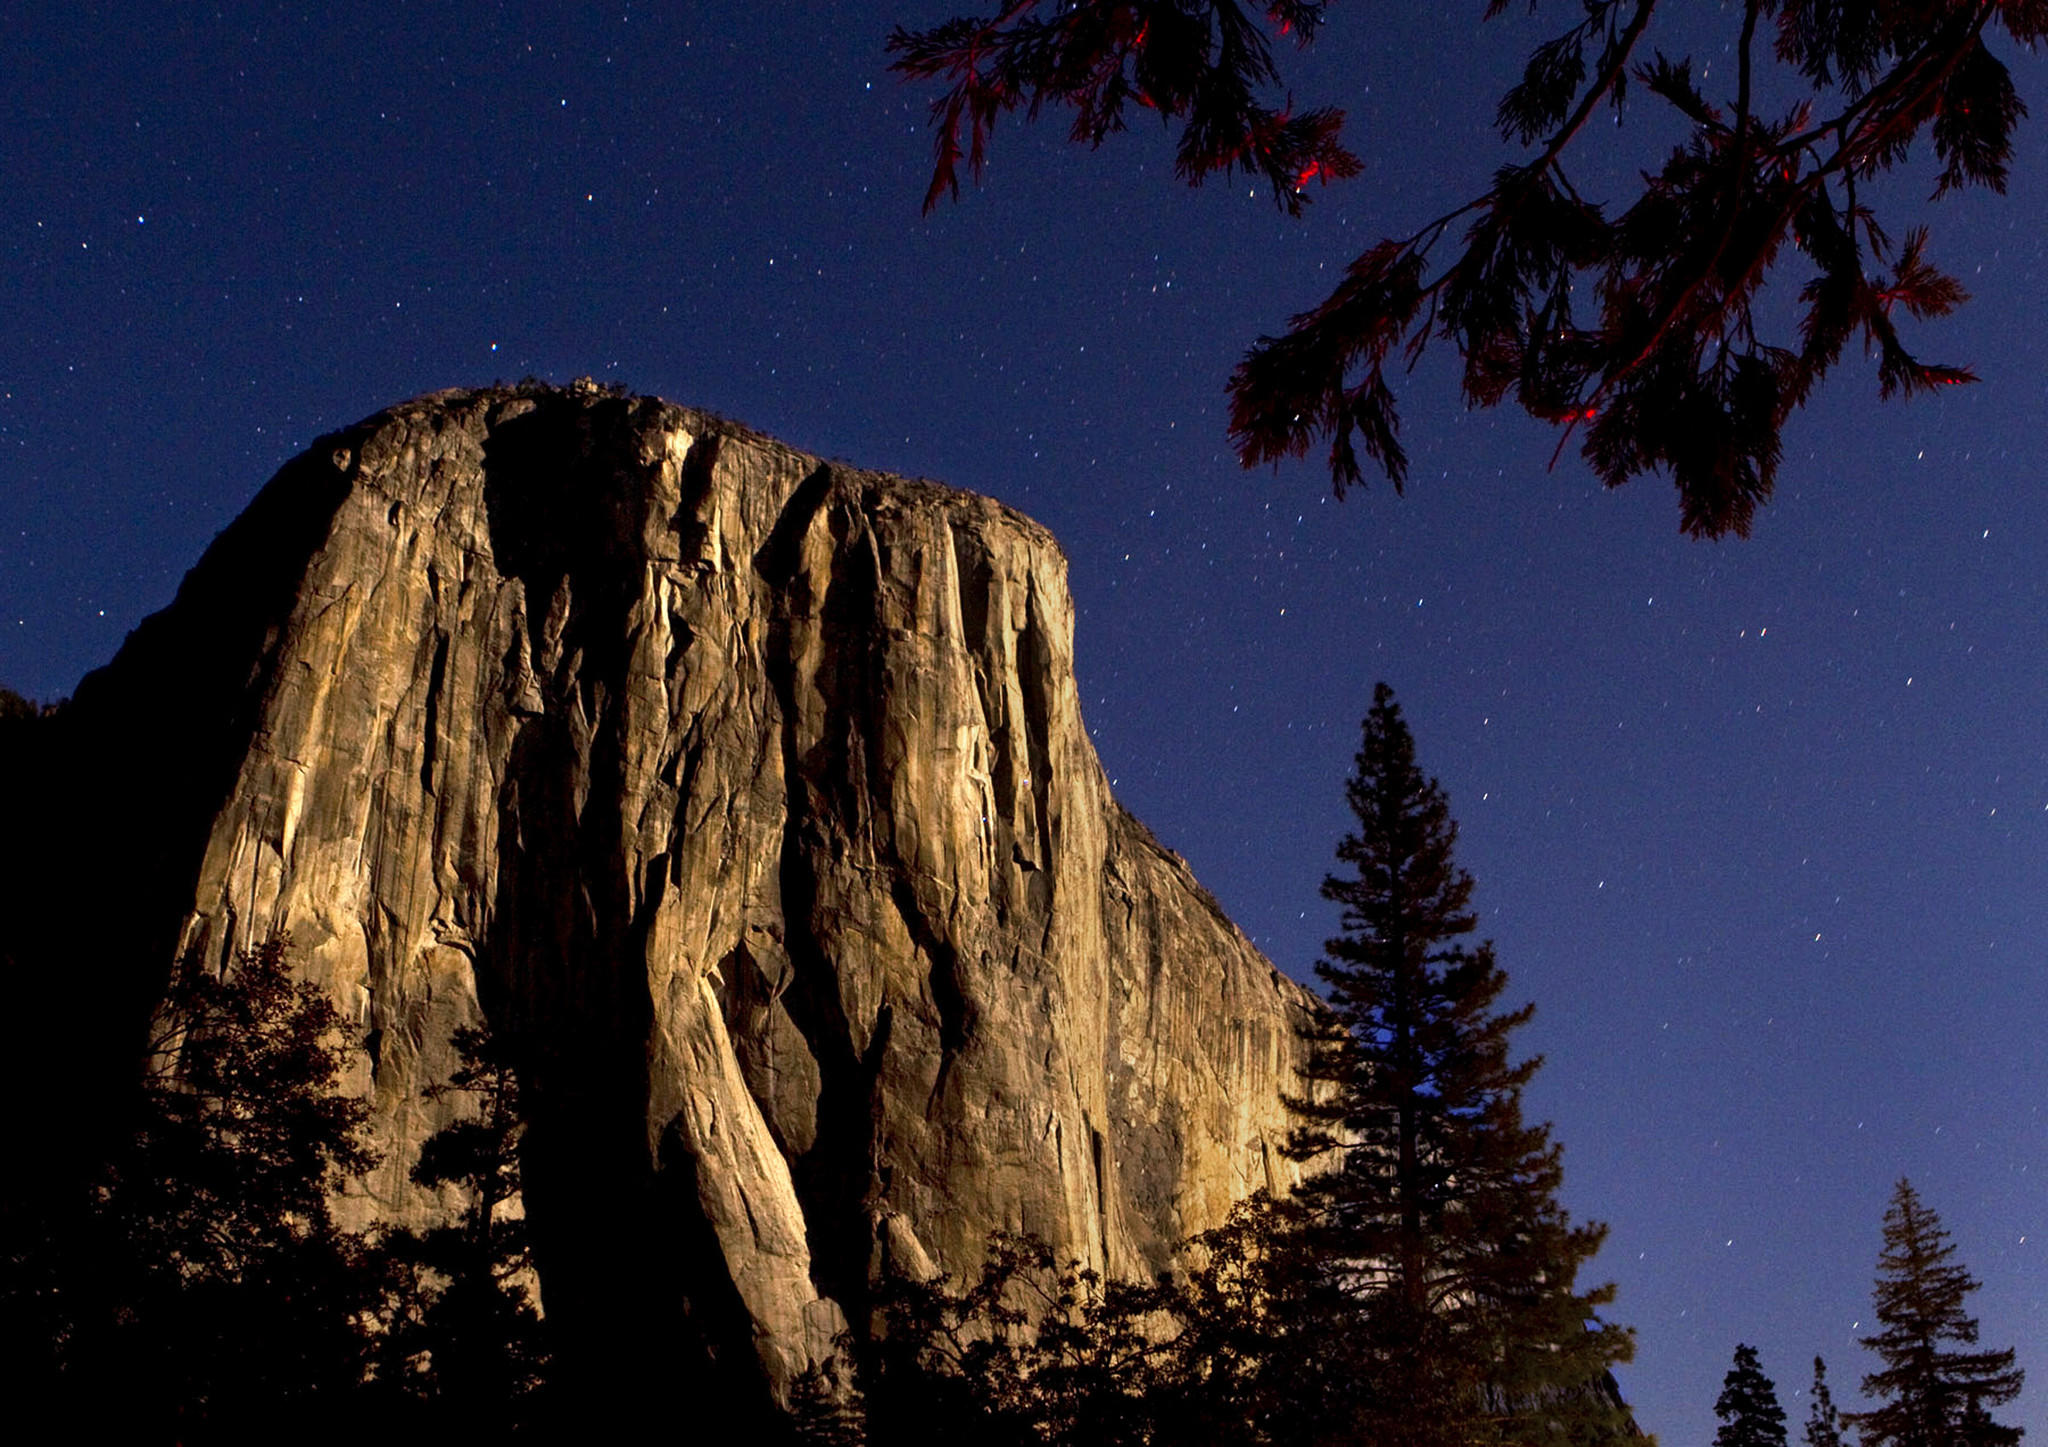 El Capitan strikes a majestic pose while bathed in the moonlight in Yosemite Valley.